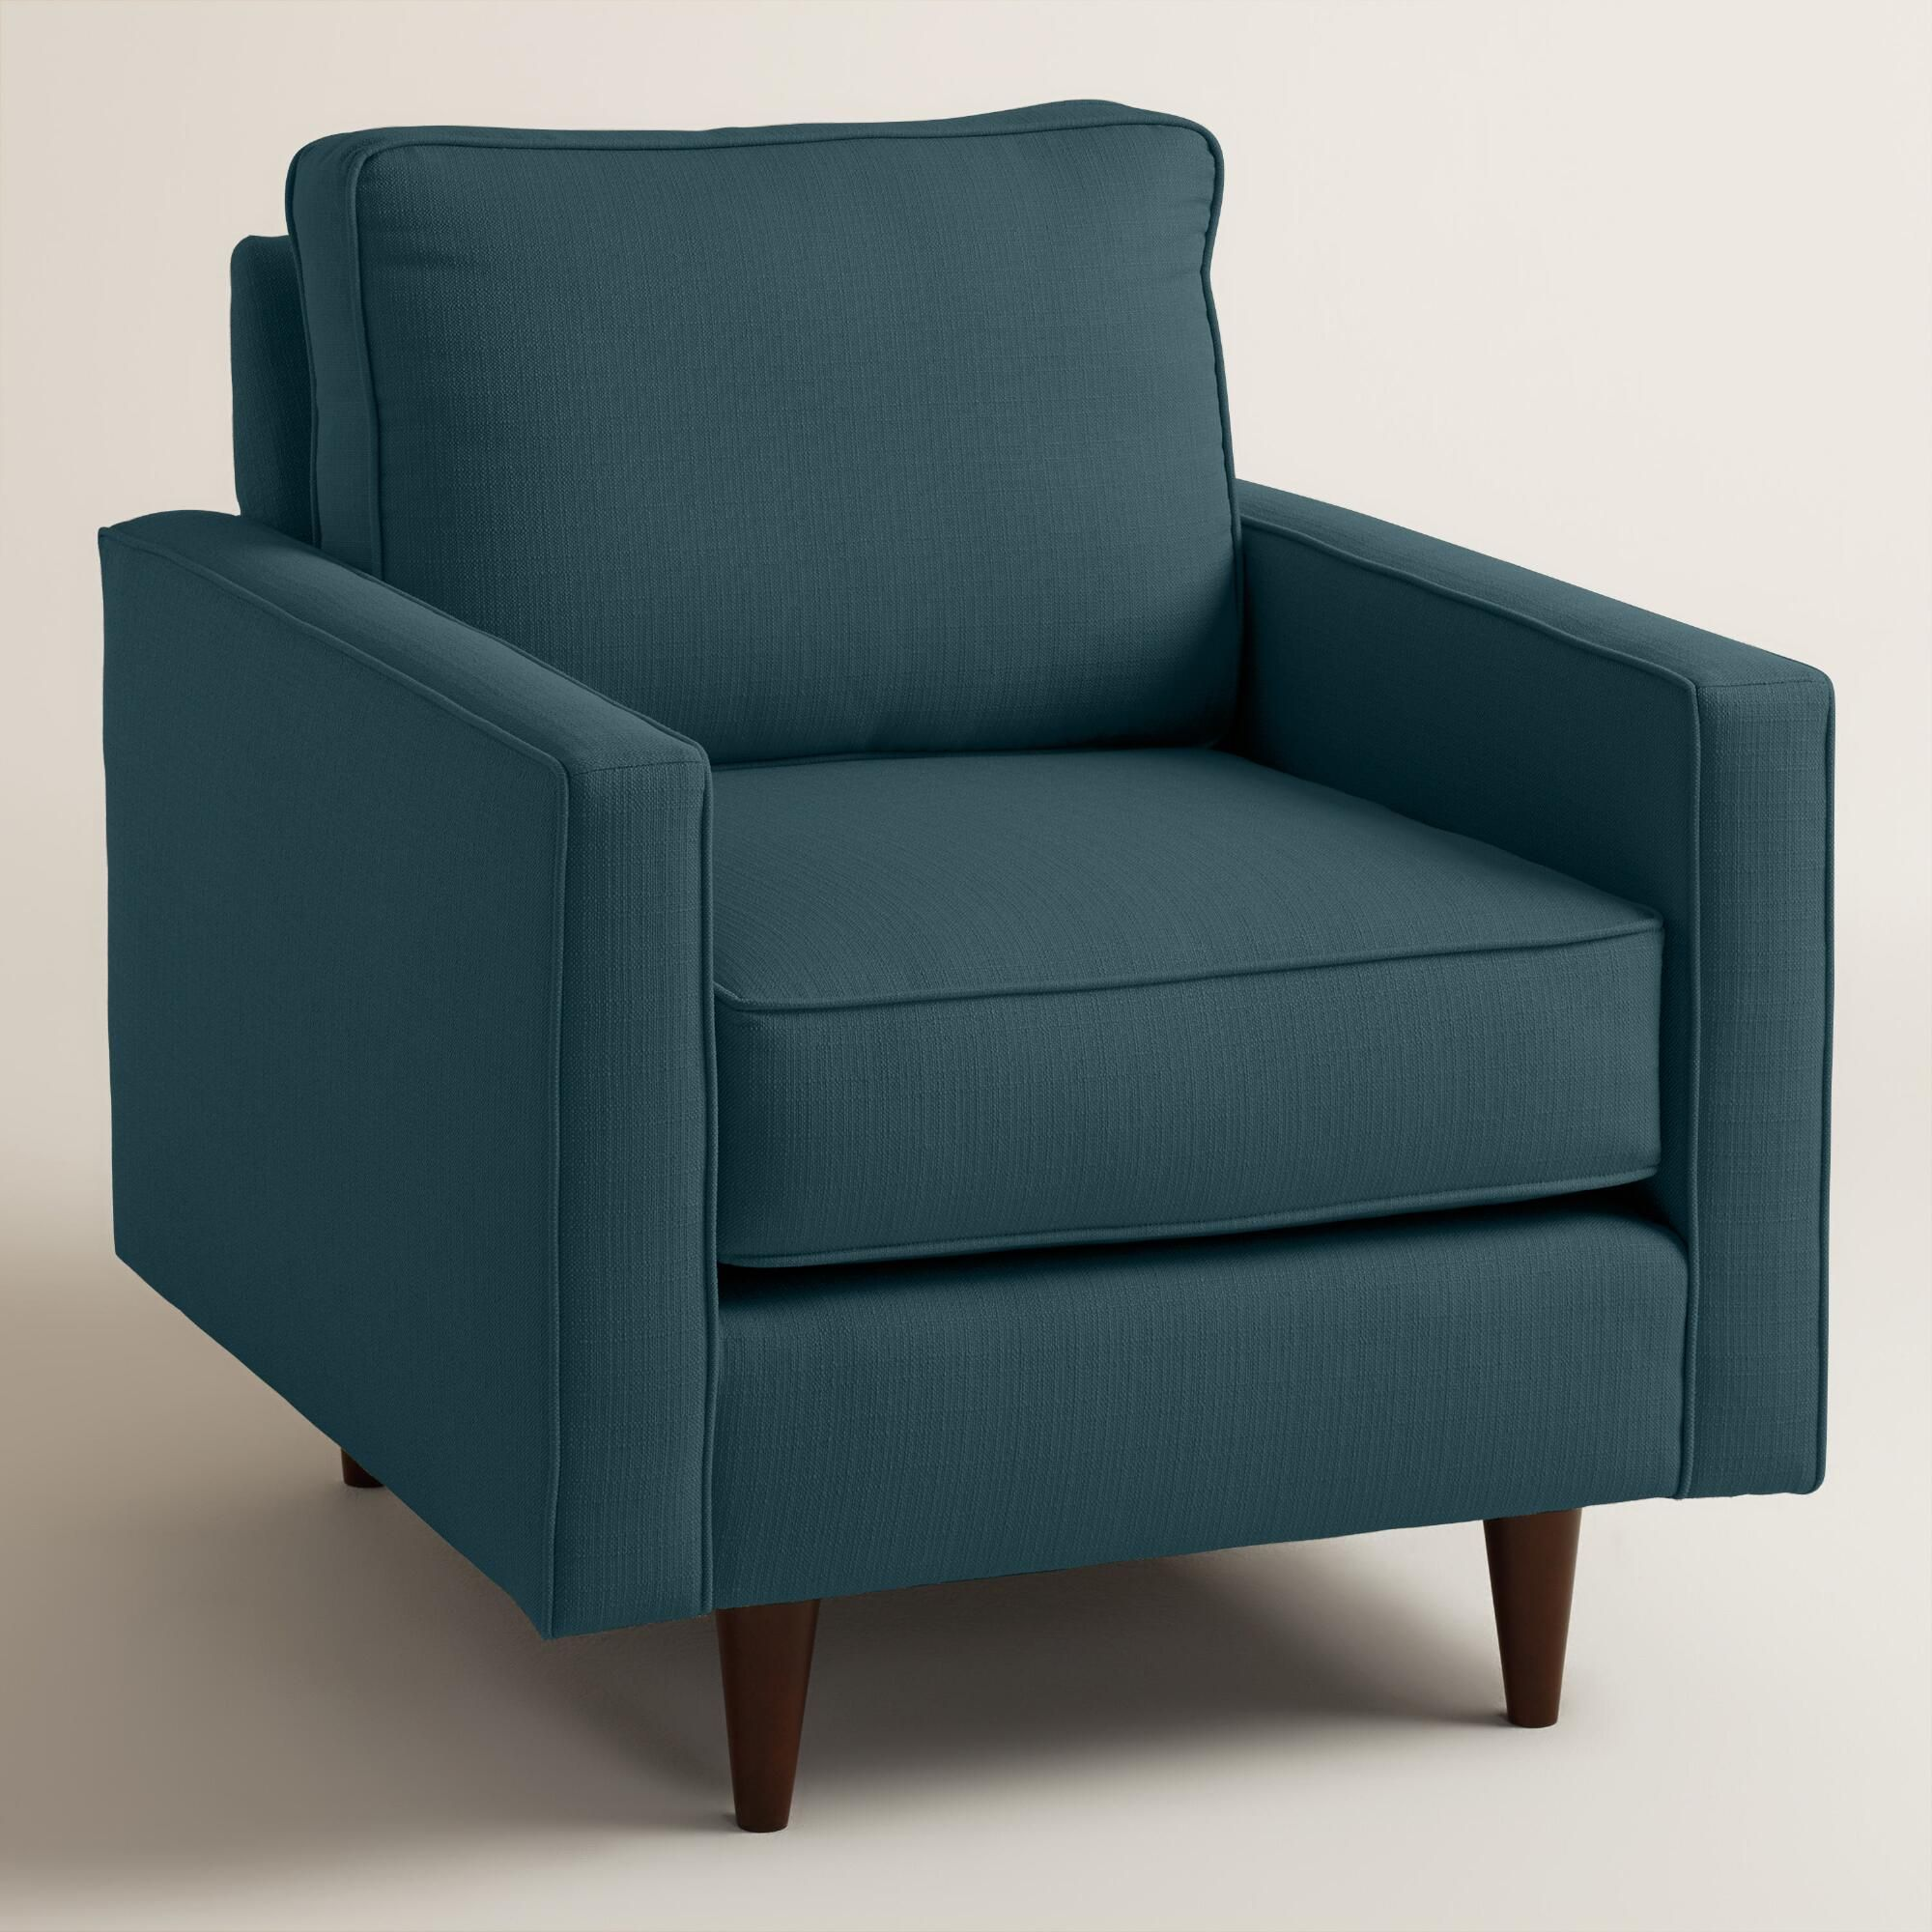 Handcrafted In The U.S.A. With Soft Woven Upholstery, Our